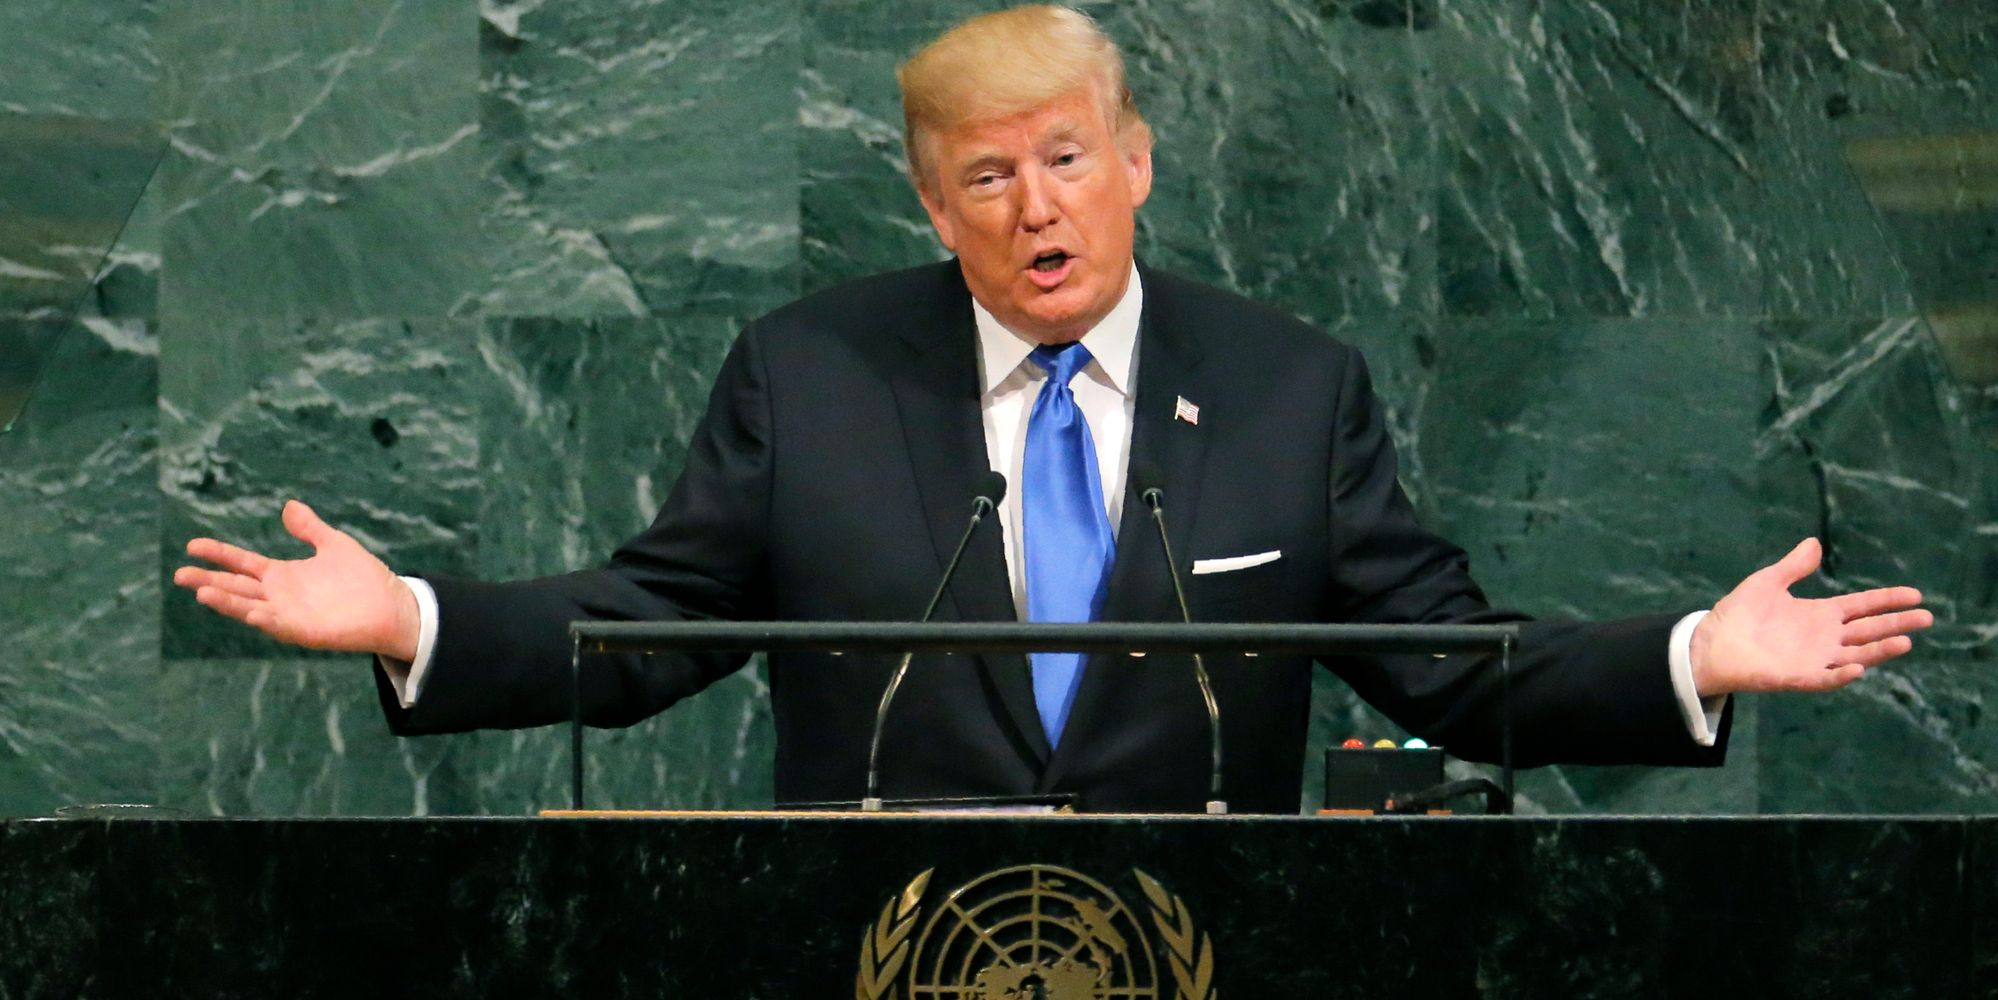 Donald Trump Threatens To 'Totally Destroy North Korea' In Speech To United Nations Leaders